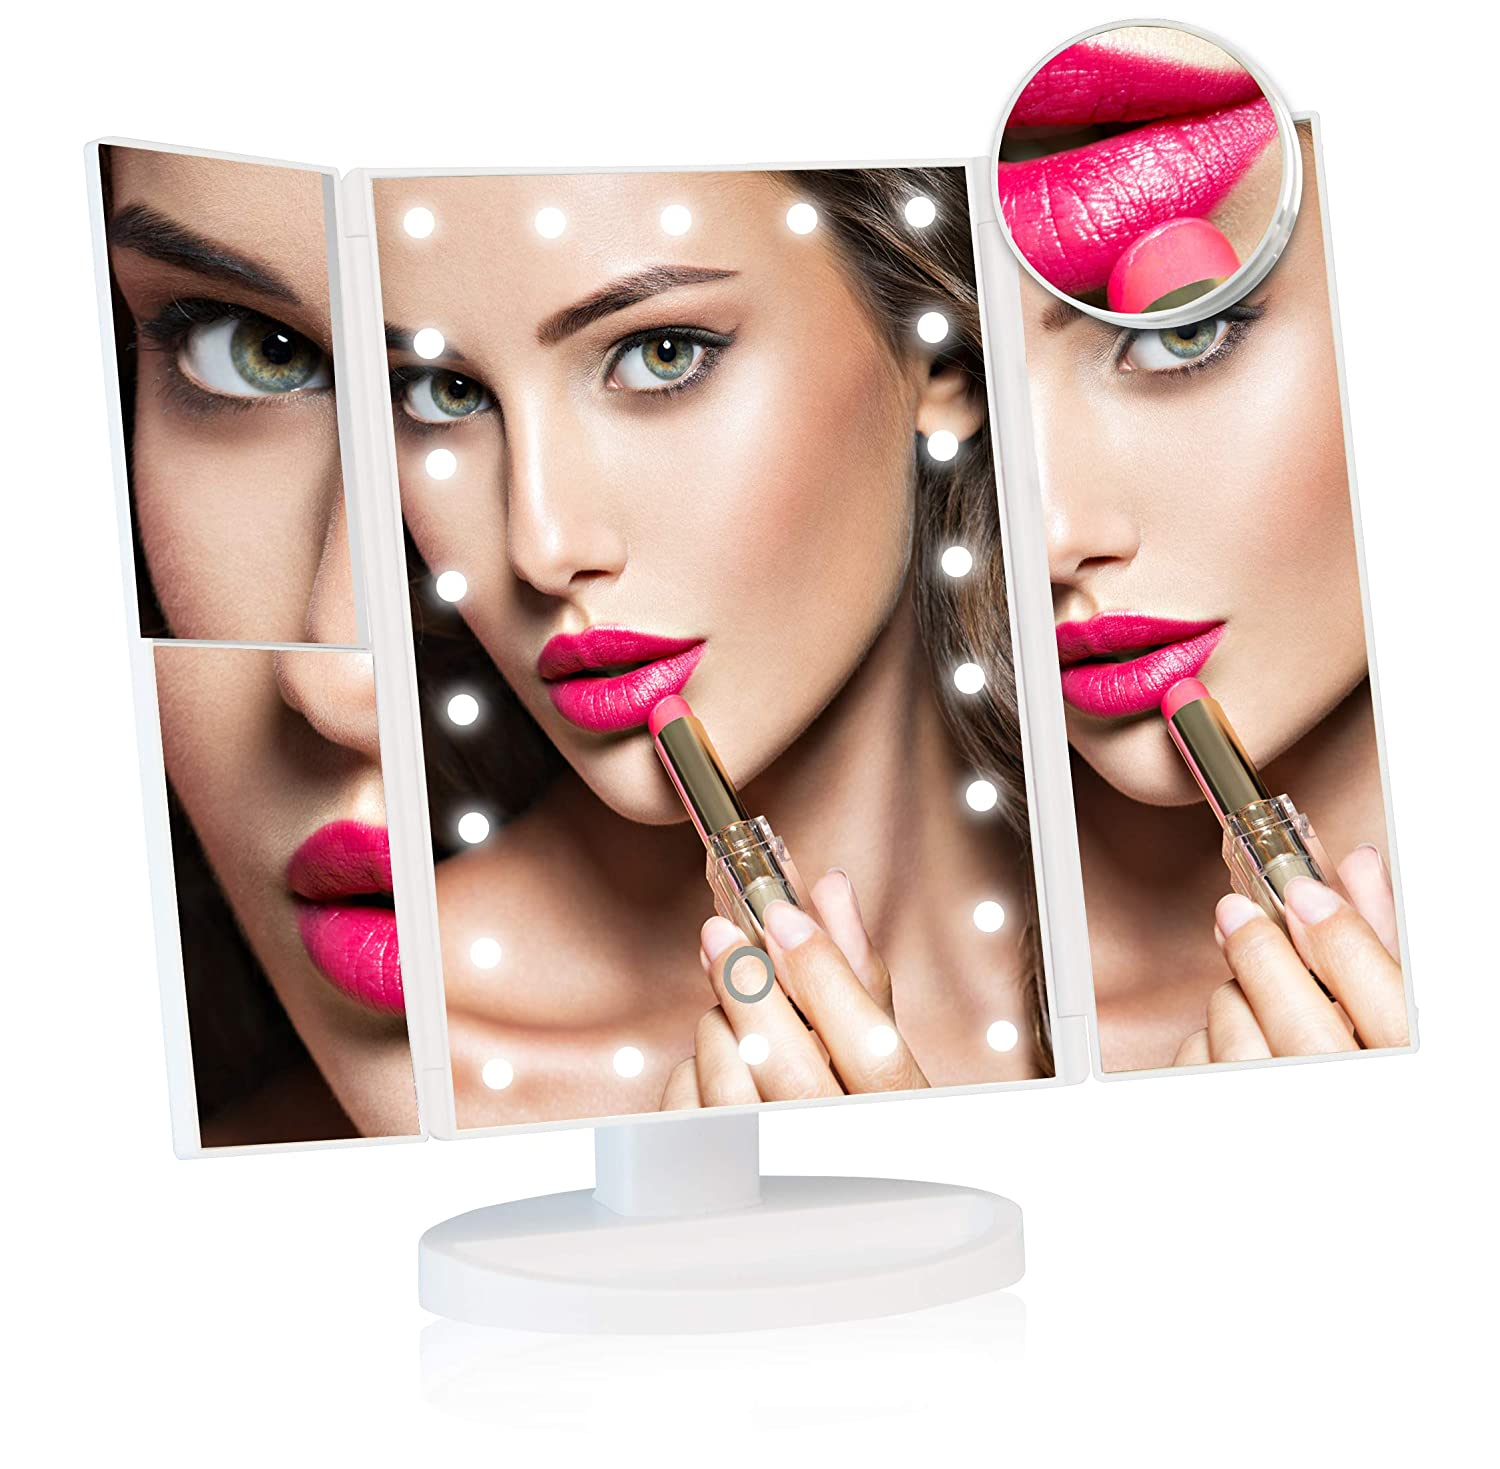 52fbcb0a1c8 Dressing Table Makeup Mirror with Light  Make Up and Shaving Free-Standing  Magnifying Vanity Mirror with Dimmer